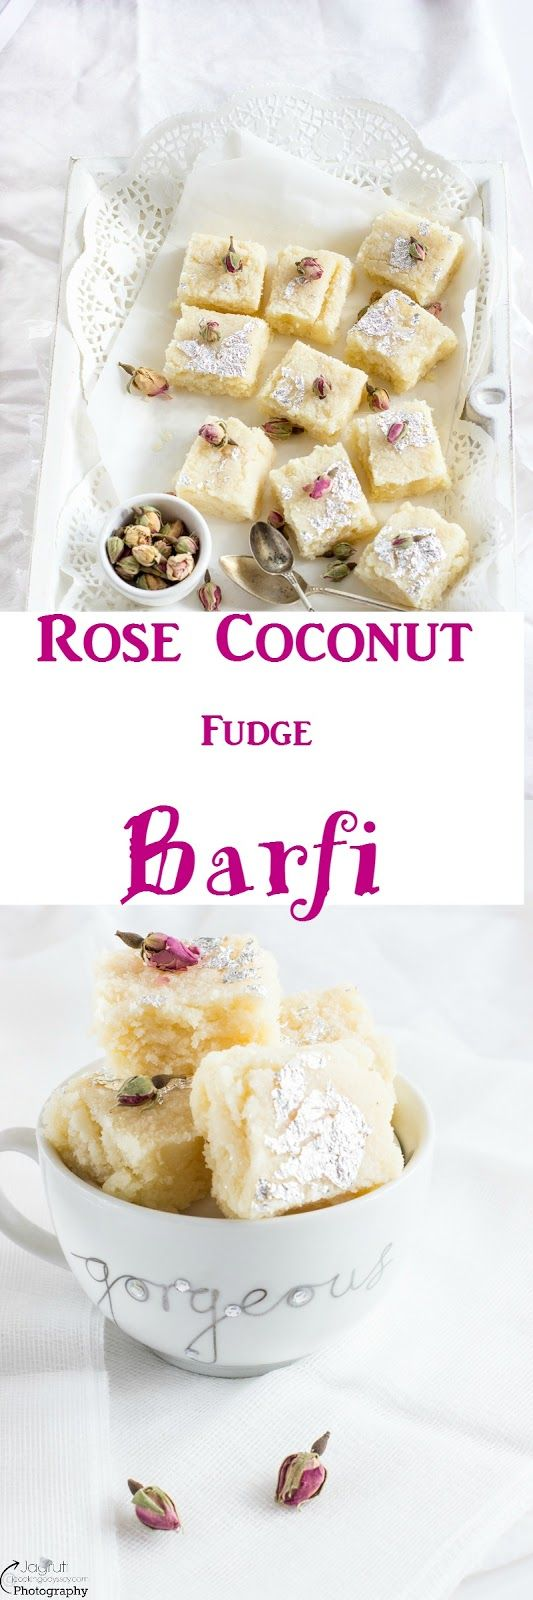 These glorious Rose Coconut Barfi are so elegant and perfect to indulge.They are just so divine !